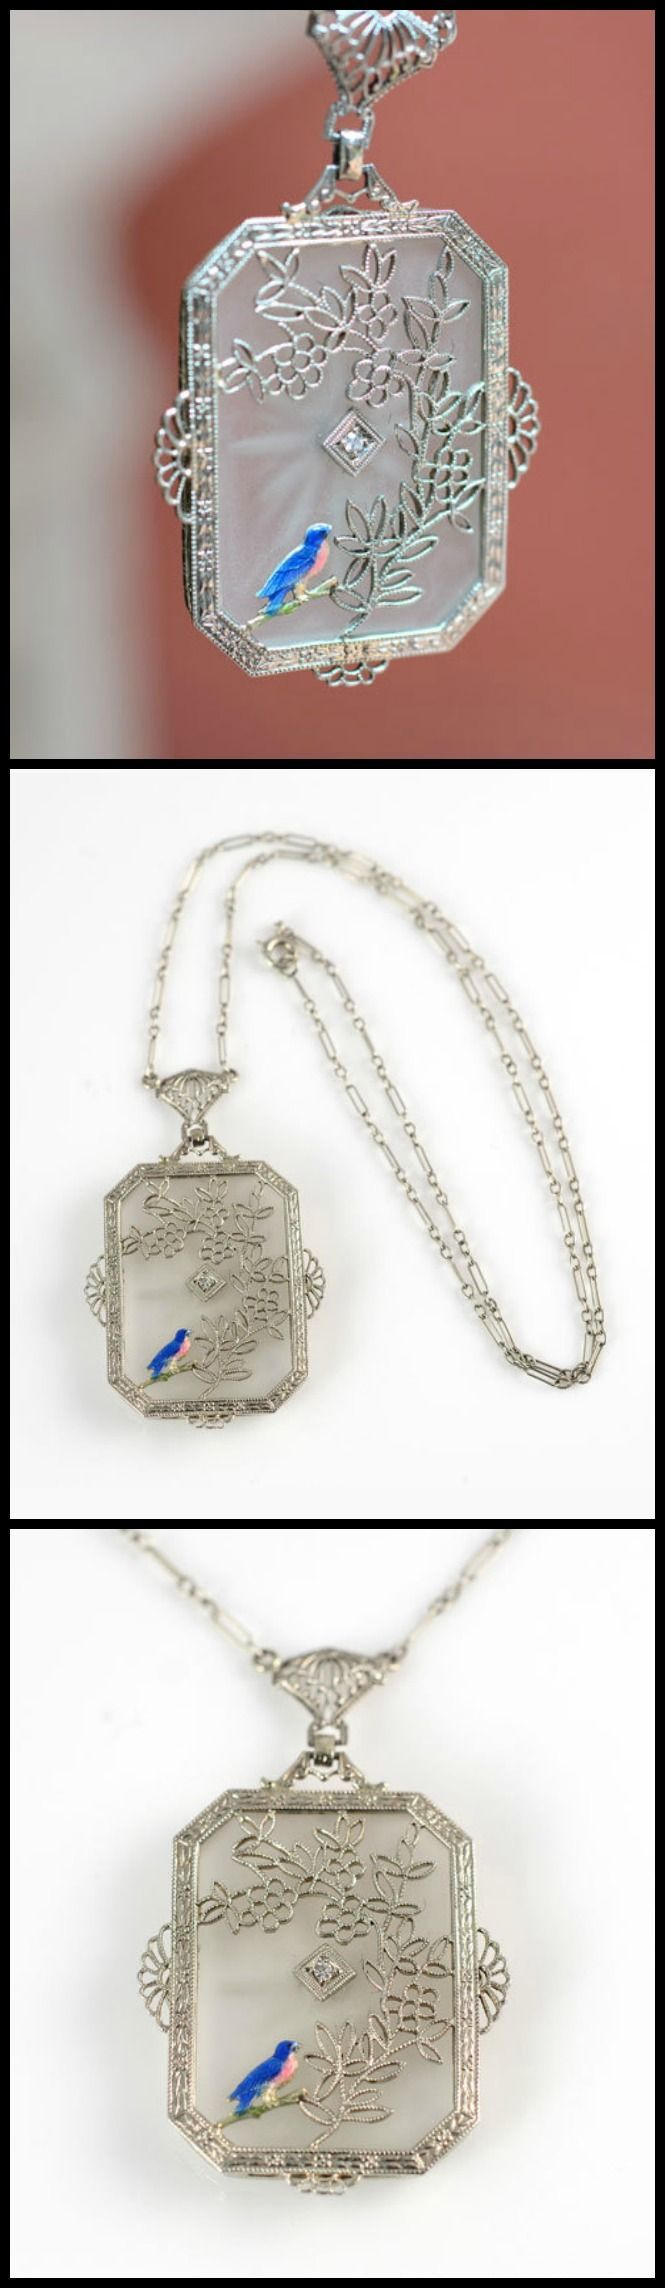 Three views - an antique Art Deco camphor glass and filigree necklace with an unusual enameled bird detail and classic paperclip chain